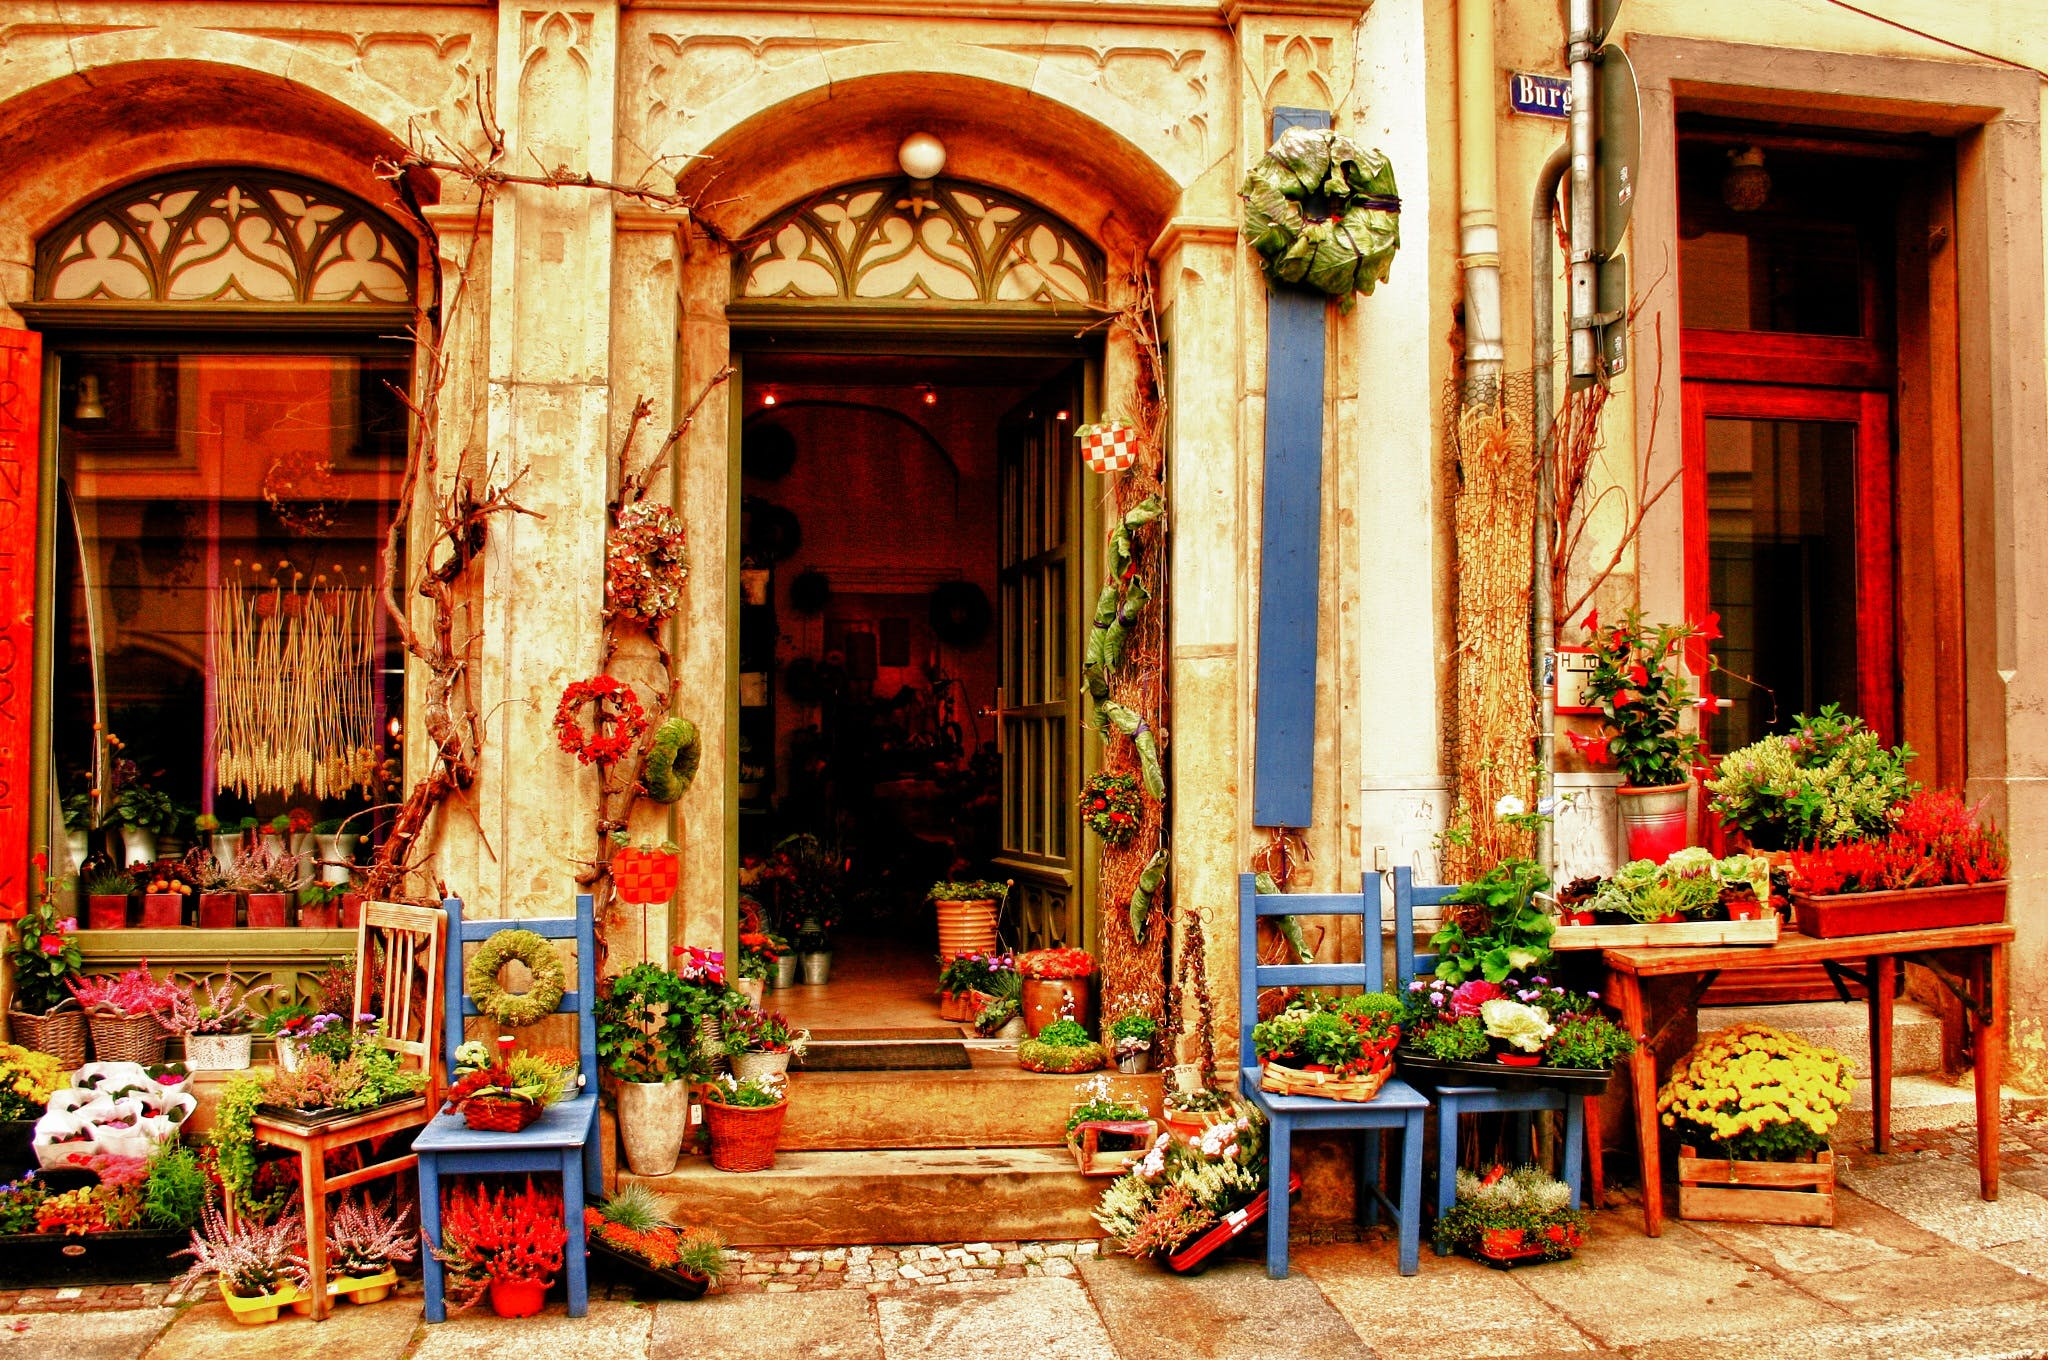 Free stock photo of hdr, flower shop, meissen impression